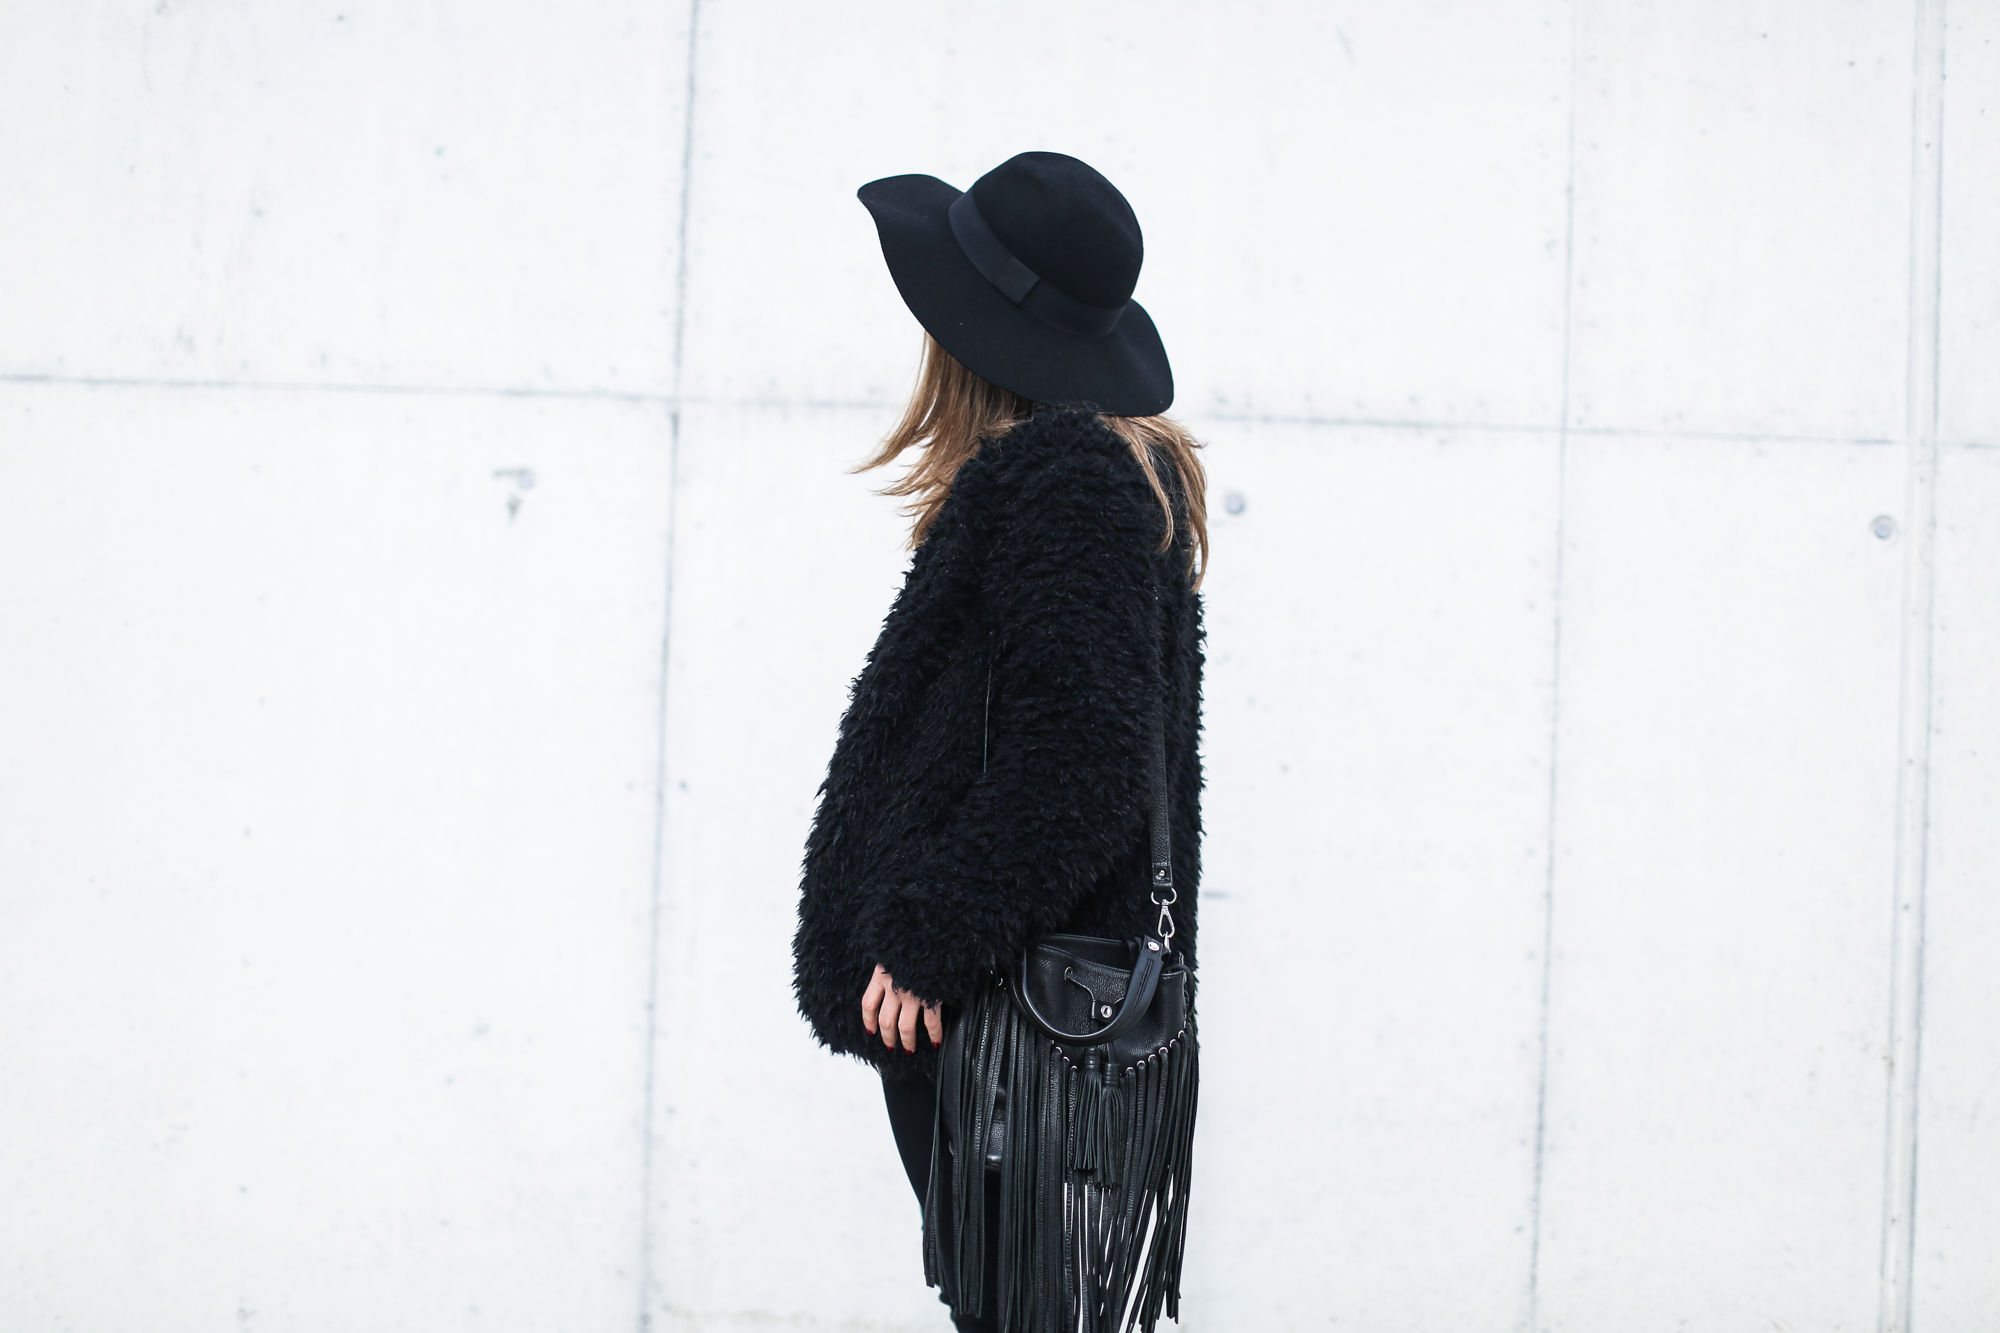 clochet_streetstyle_Billabong_Christmas_collection_furry_coat-15